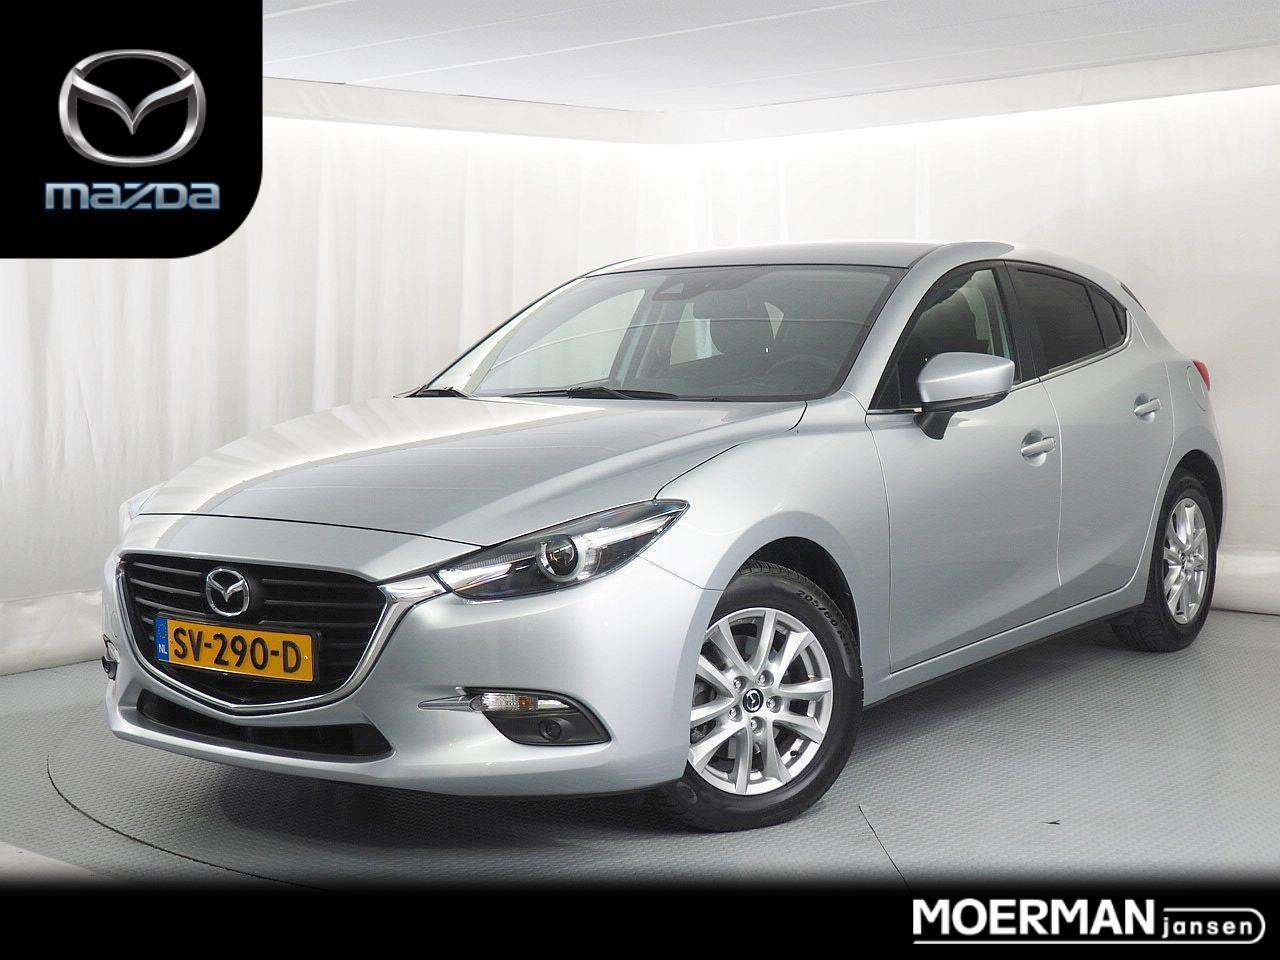 Mazda 3 2.0 skylease+ / 5 drs / navigatie / camera / head-up display / 32.000km / 1e eigenaar